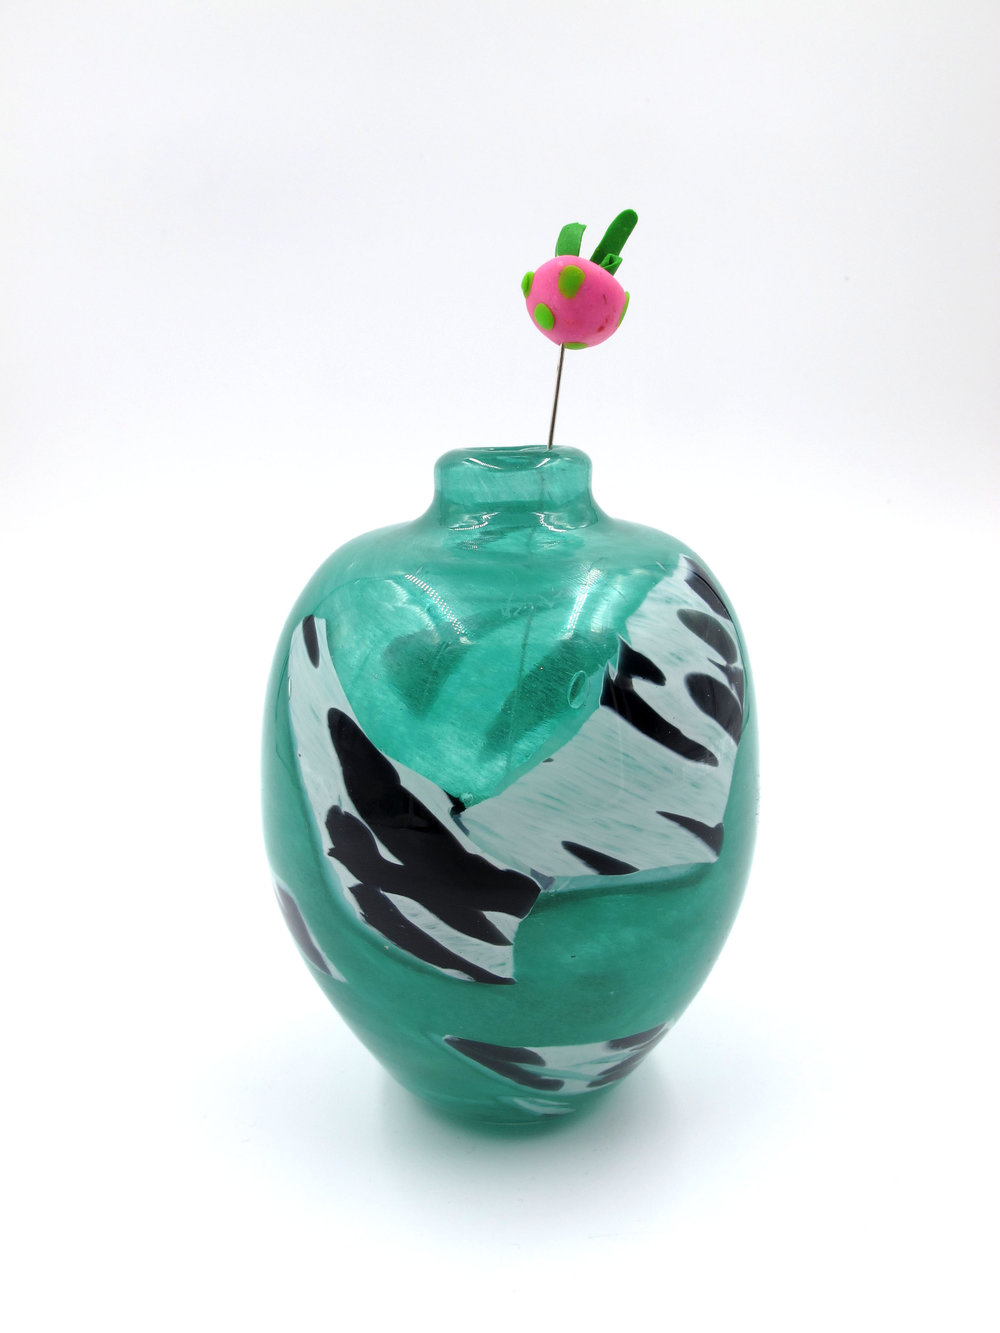 Stuart Akroyd glass